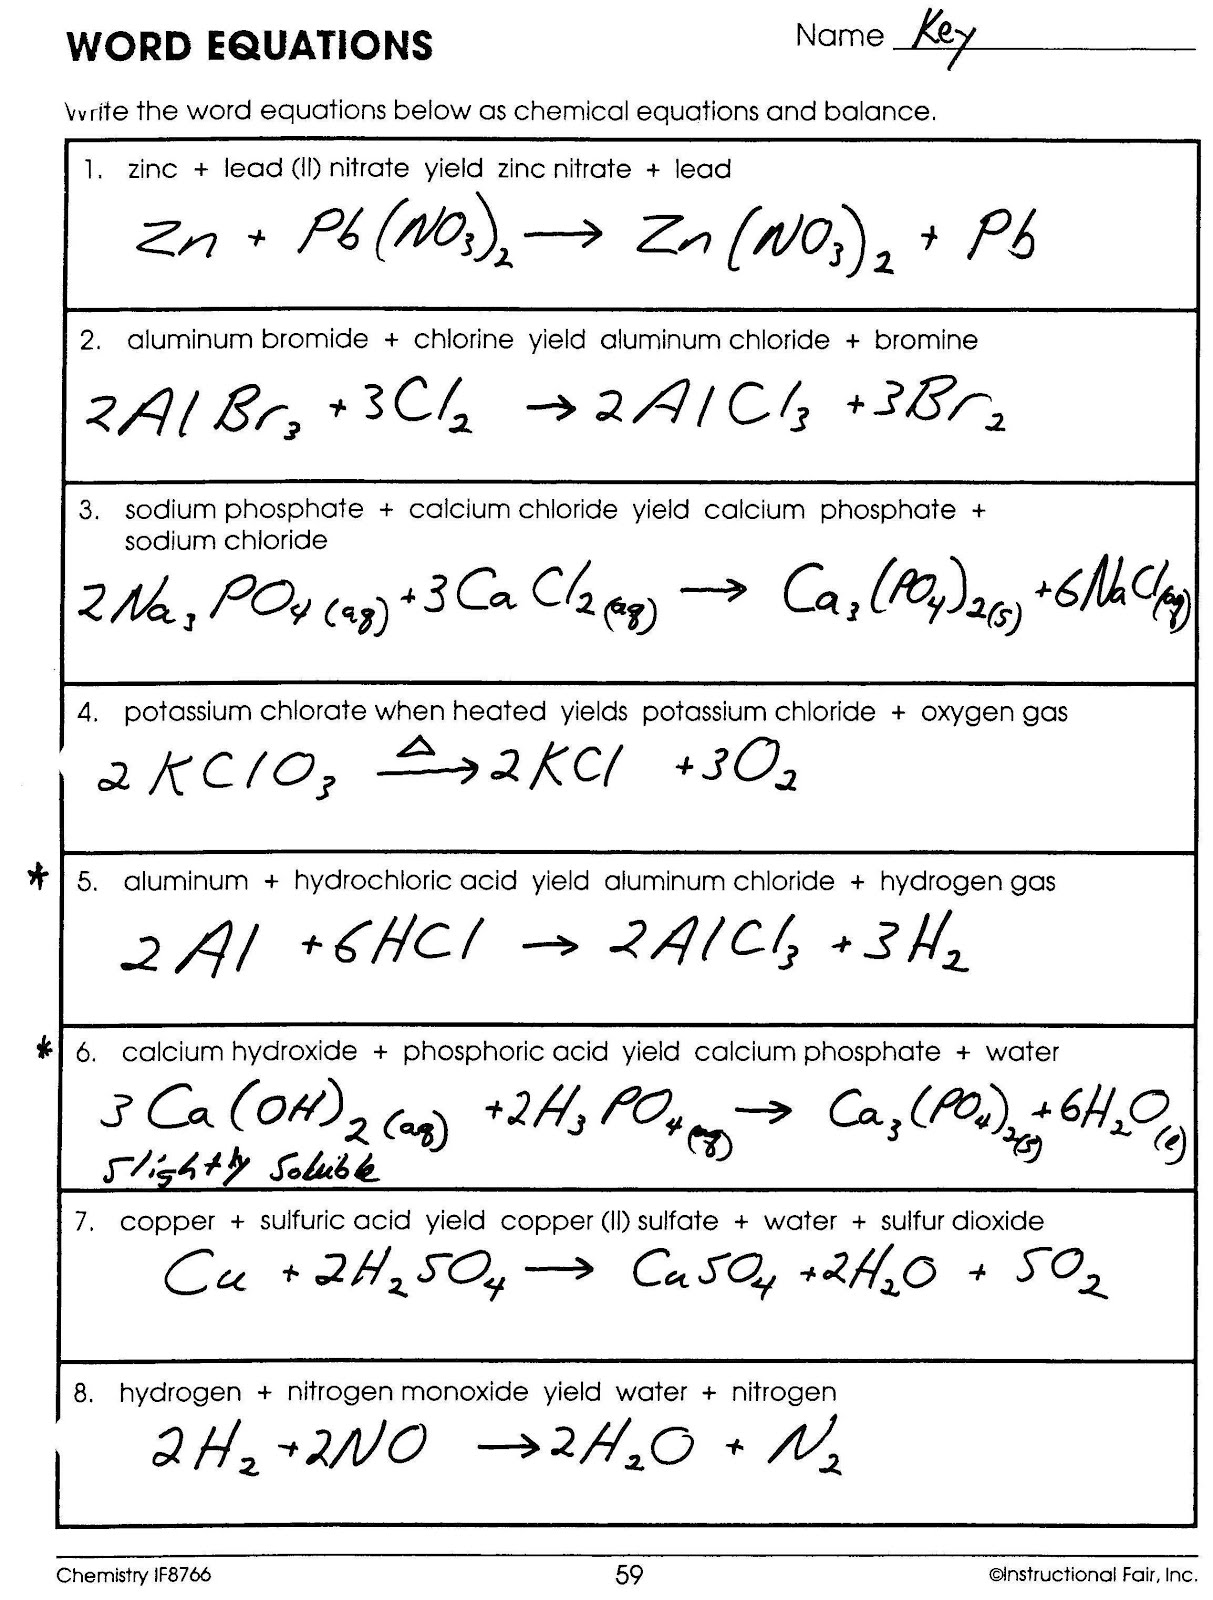 Chemical Word Equations Worksheet Answers Worksheets for all ...